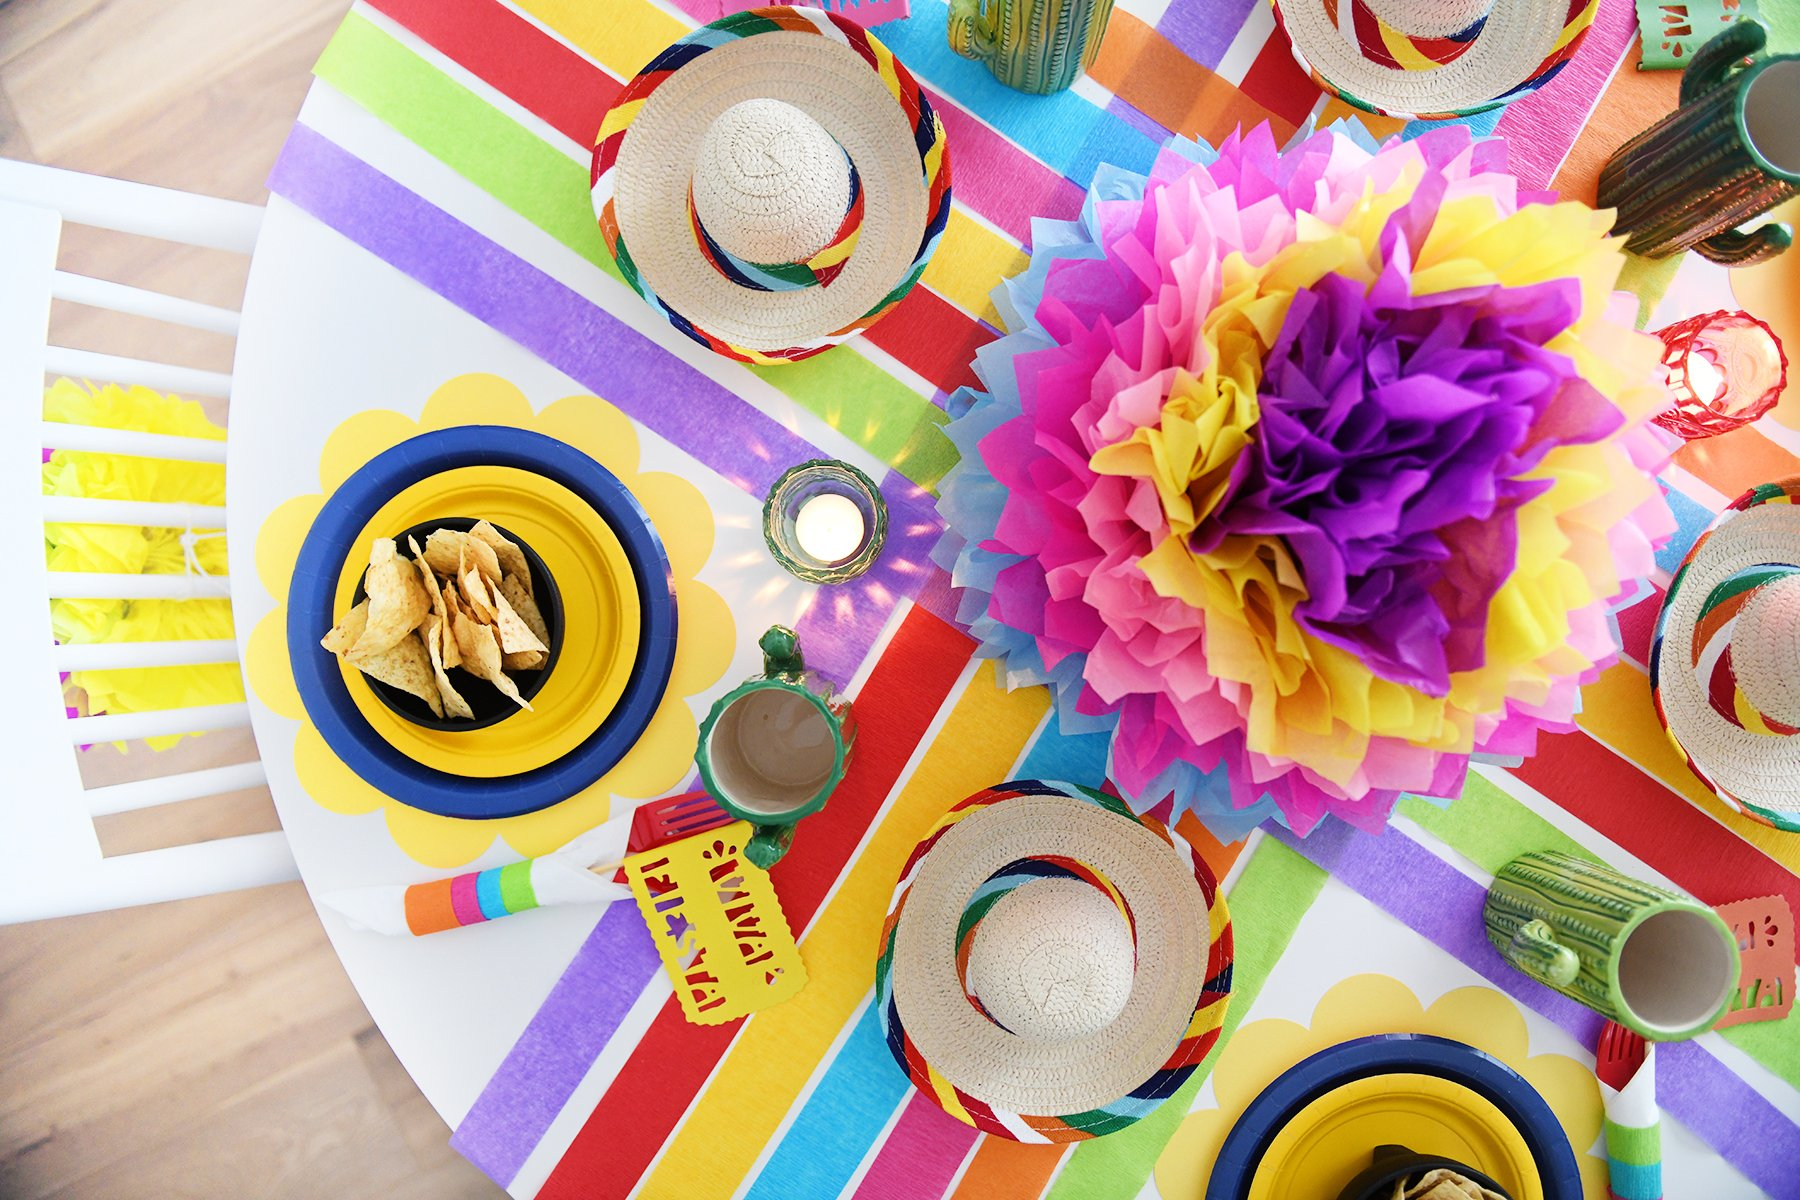 FIESTA THEME PARTY IDEAS FOR THE TABLE